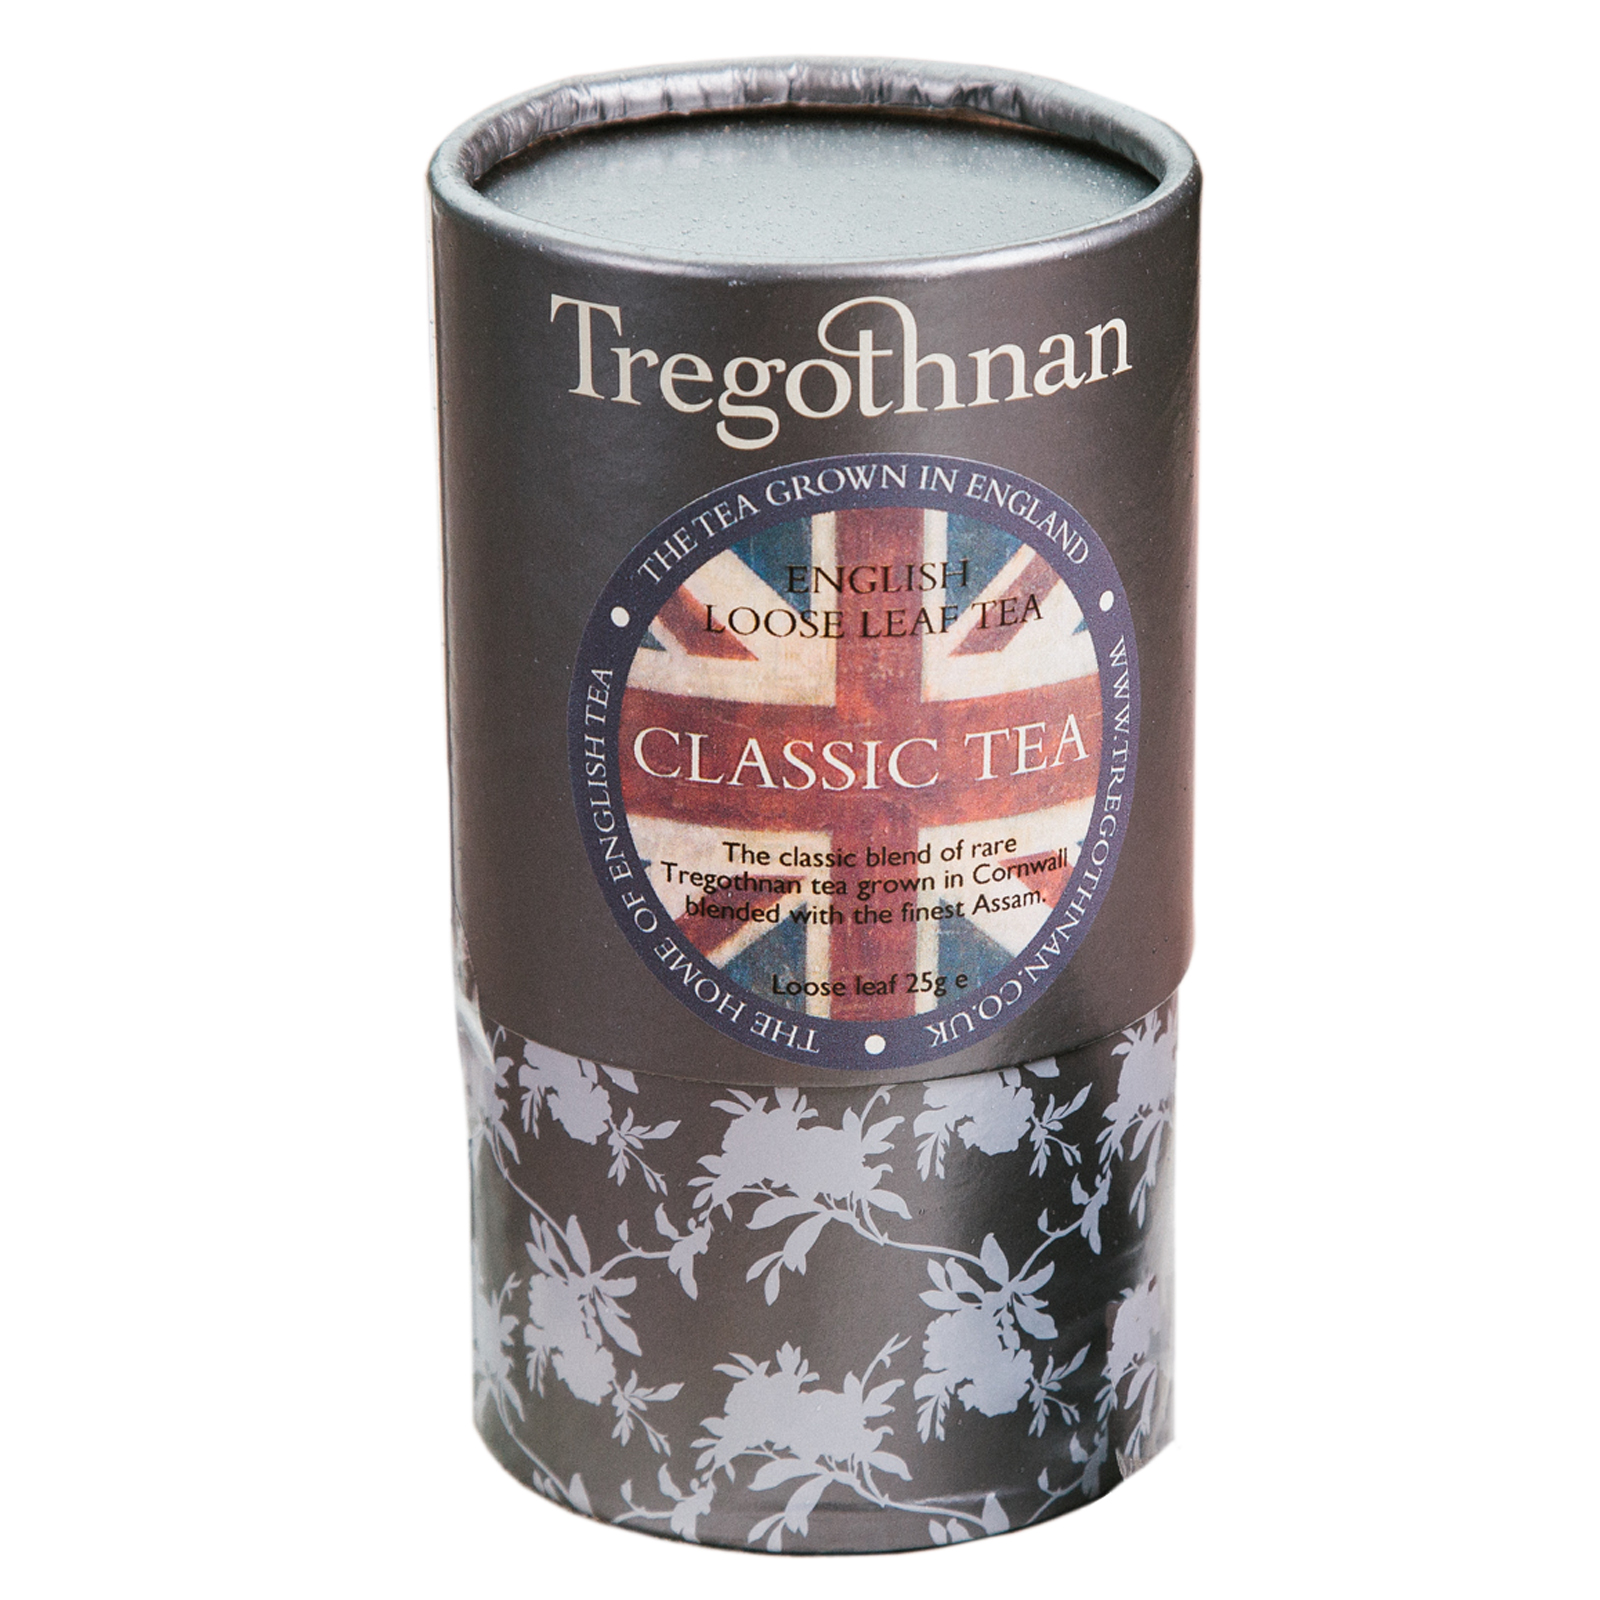 Tregothnan Classic Tea Loose Leaf Caddy 25G